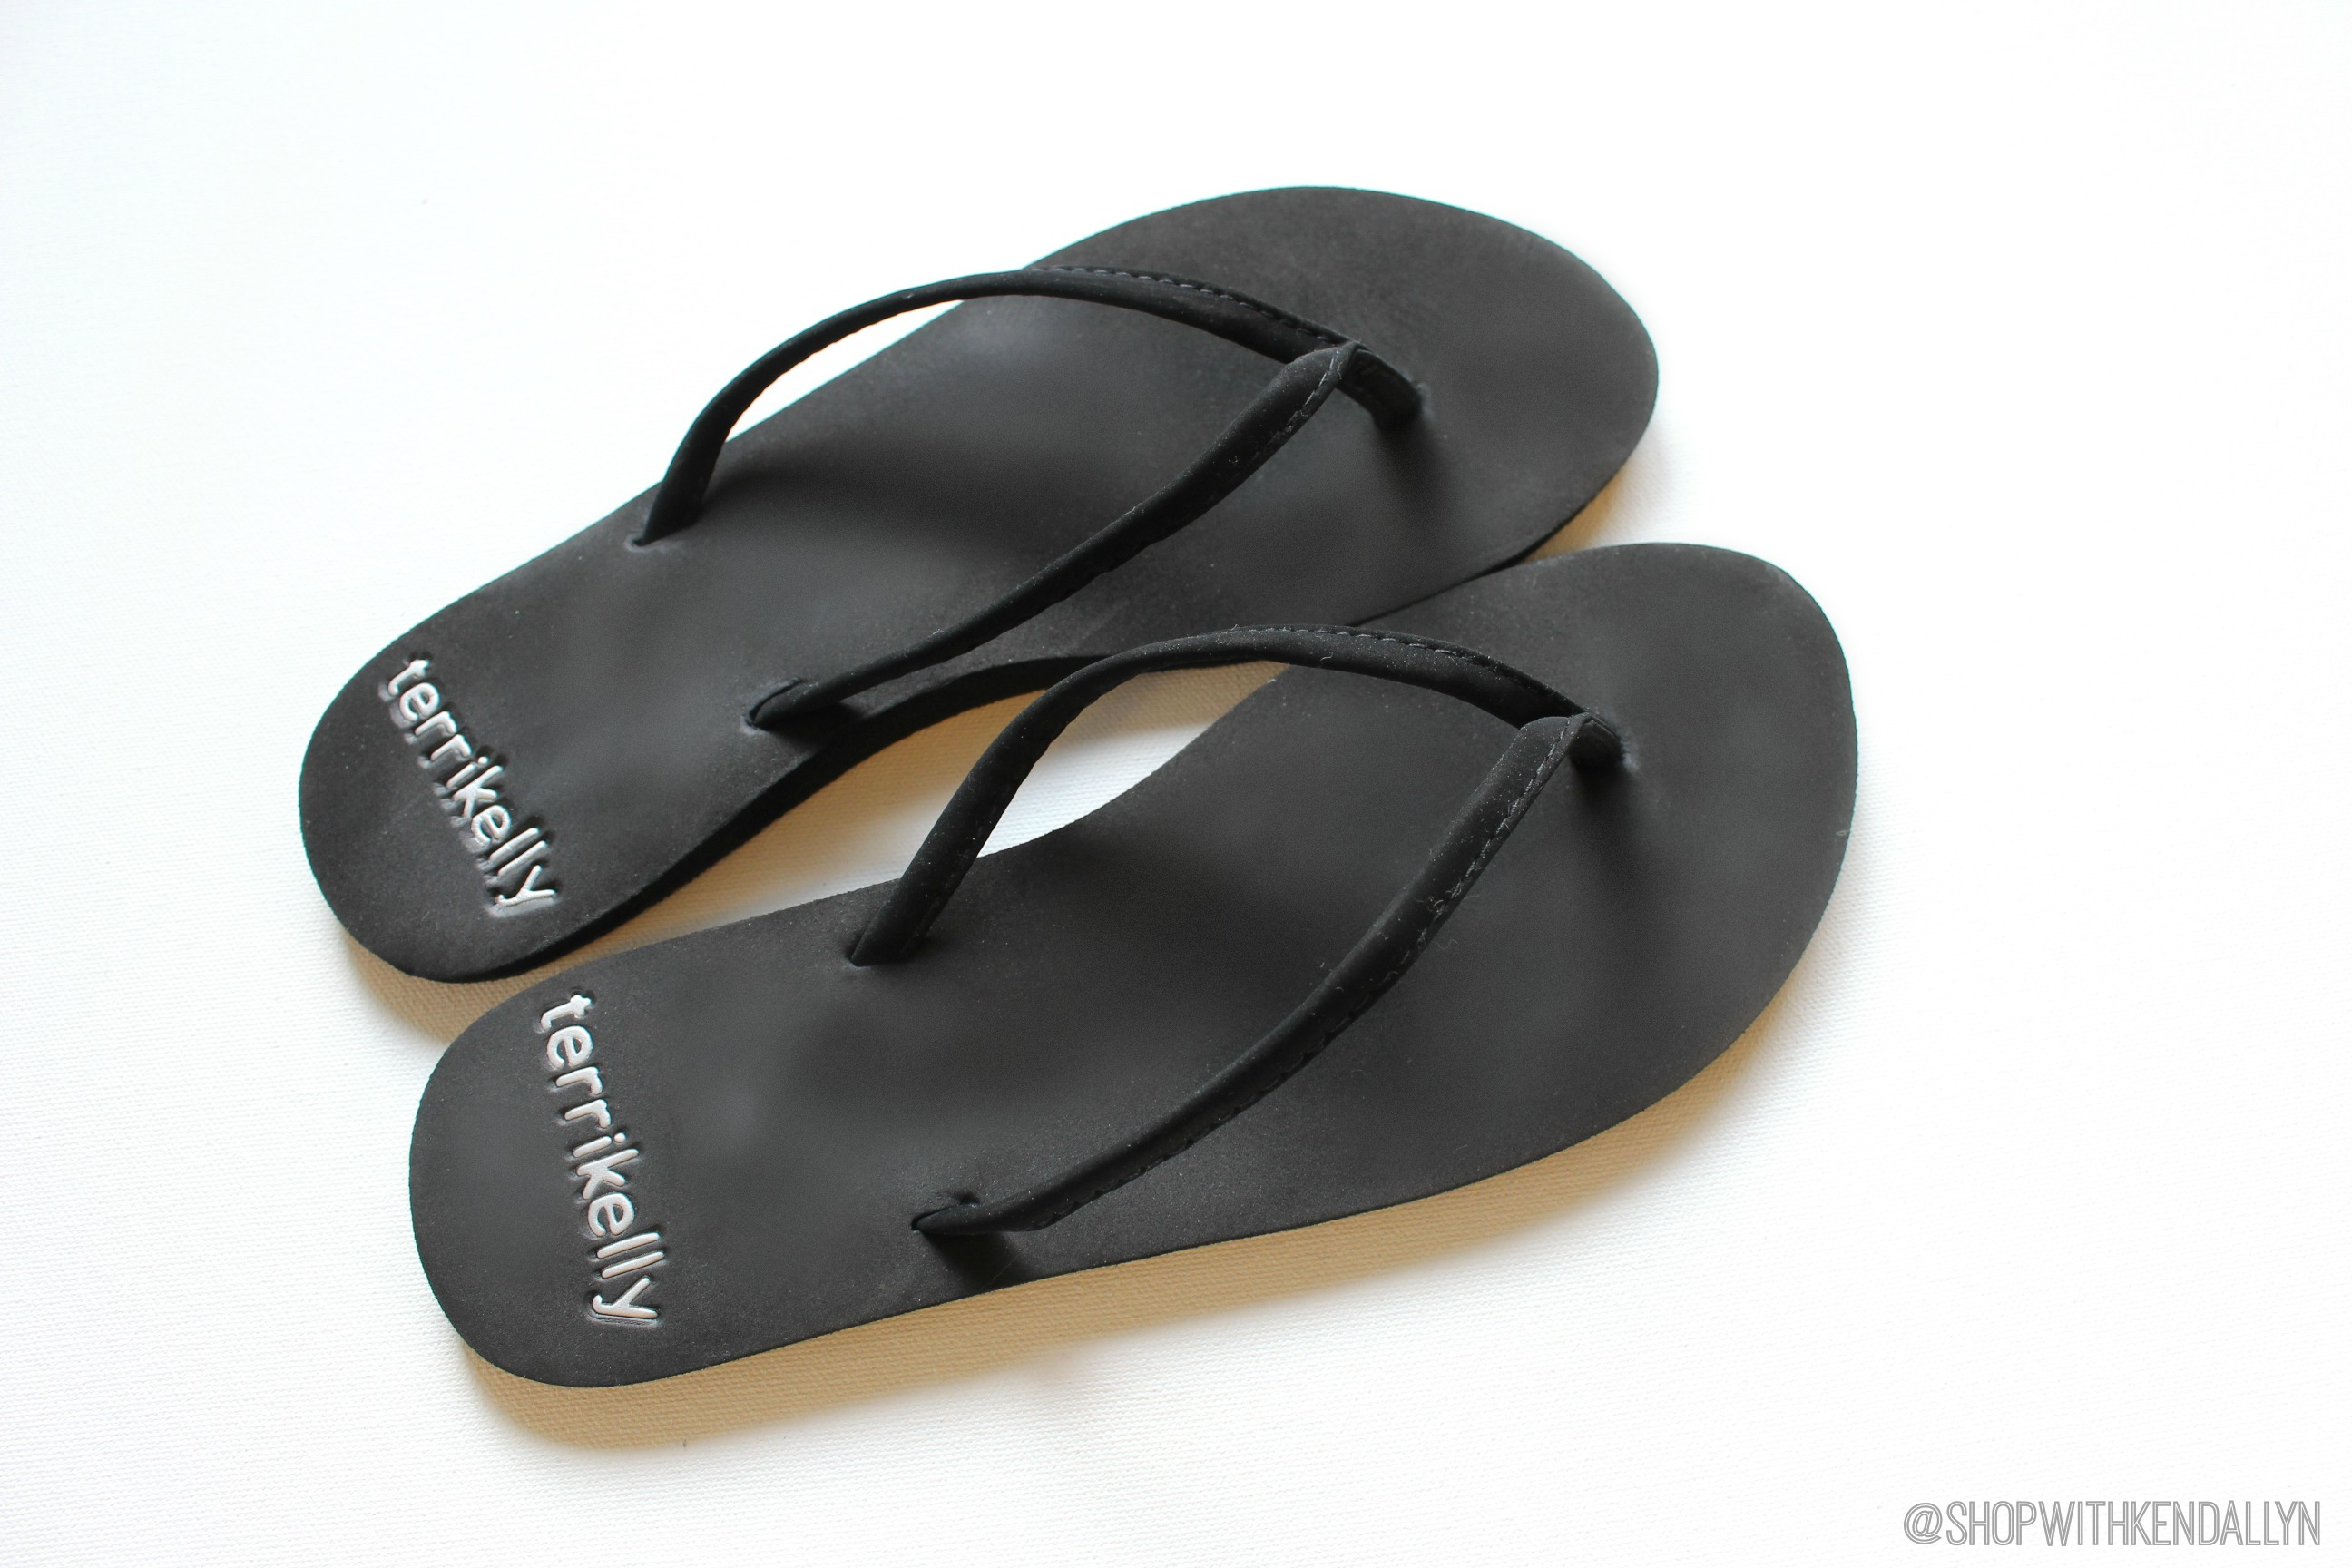 e0b7ac67fbeb These flip flops really do feel like you are walking on a yoga mat all day  long. When I first received them